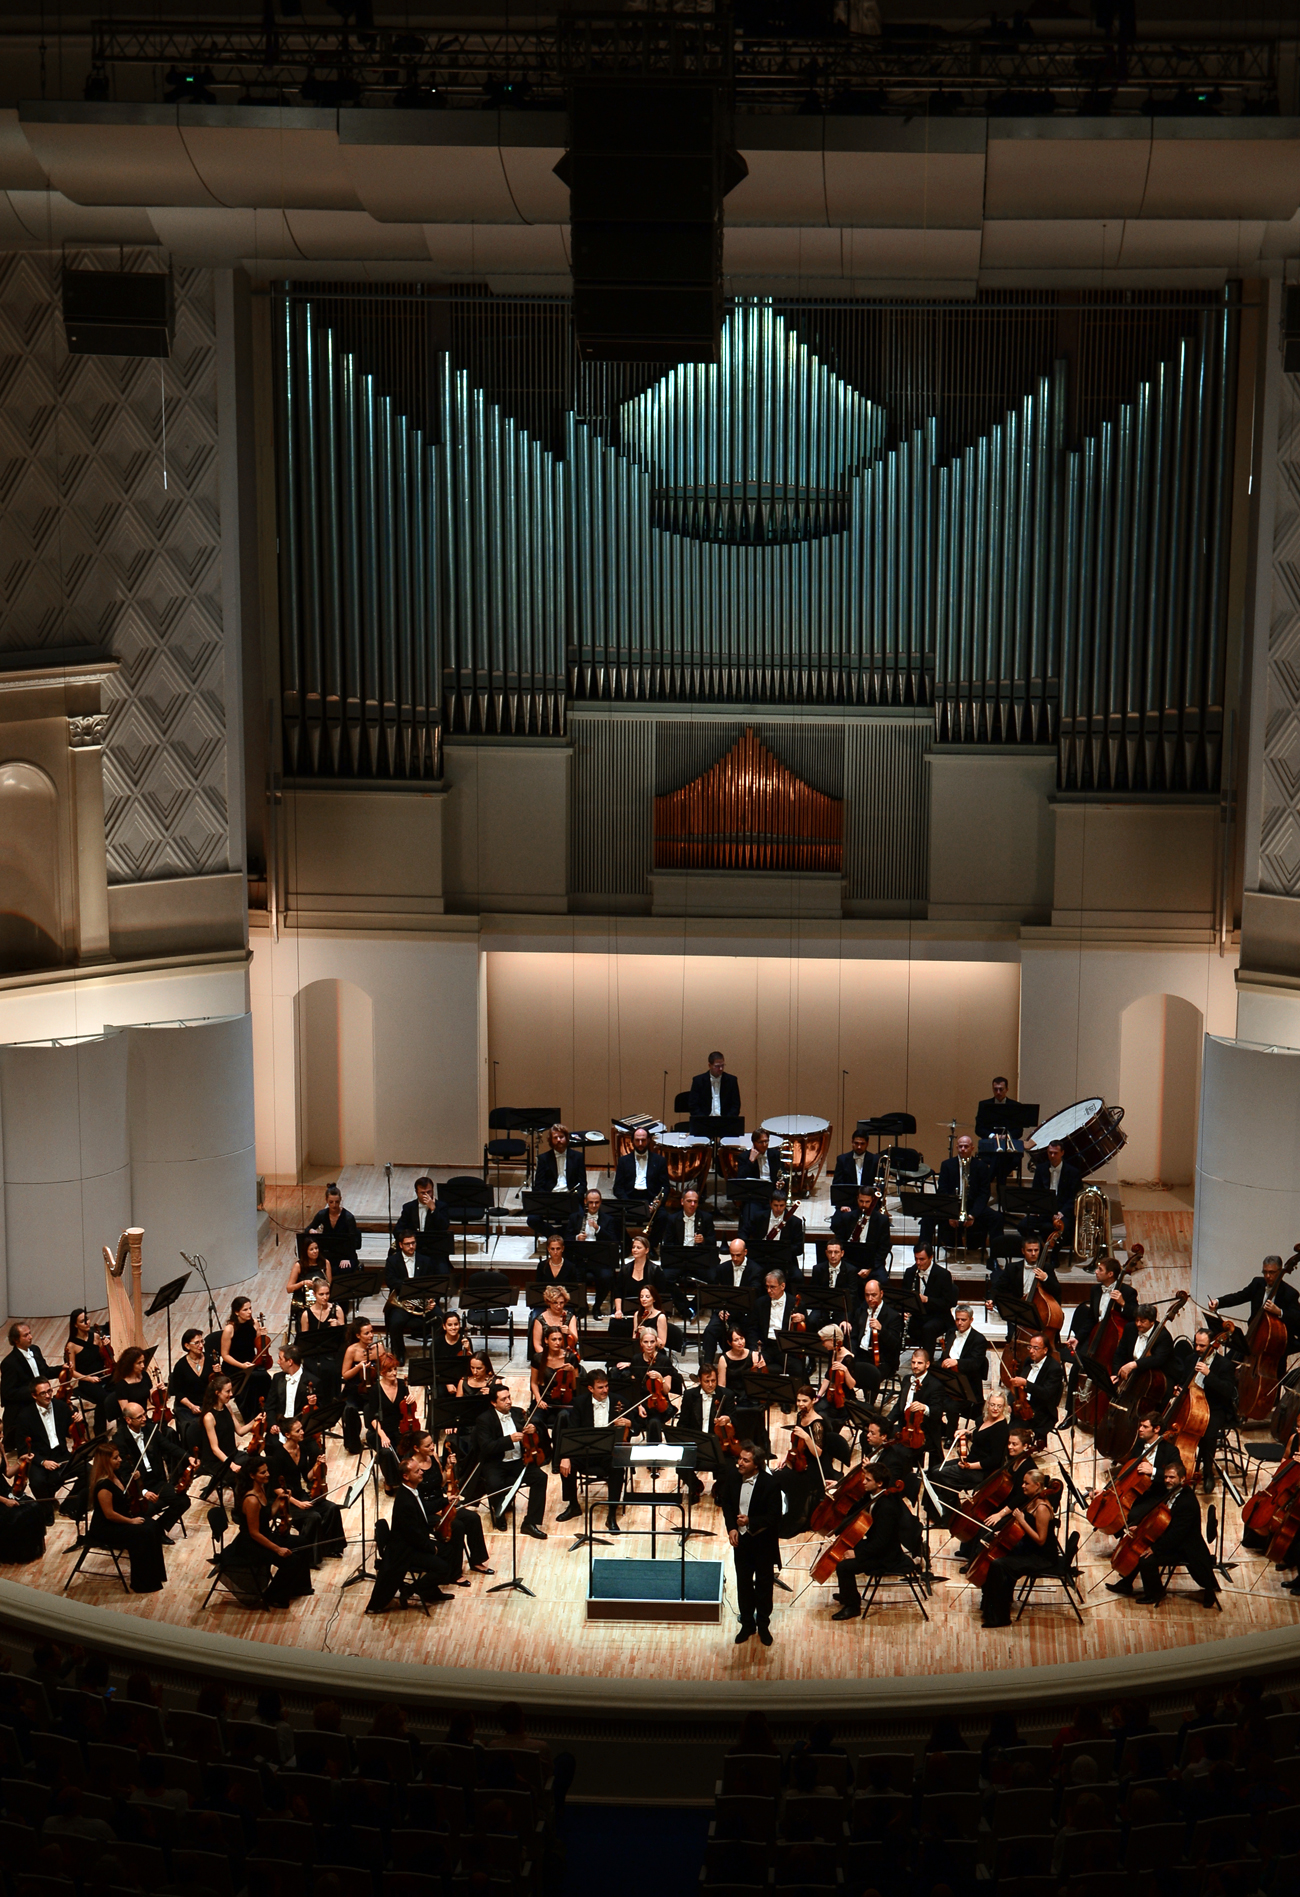 A concert by the Belgrade Philharmonic Orchestra at the Tchaikovsky Concert Hall in Moscow. Source: Vladimir Vyatkin/RIA Novosti